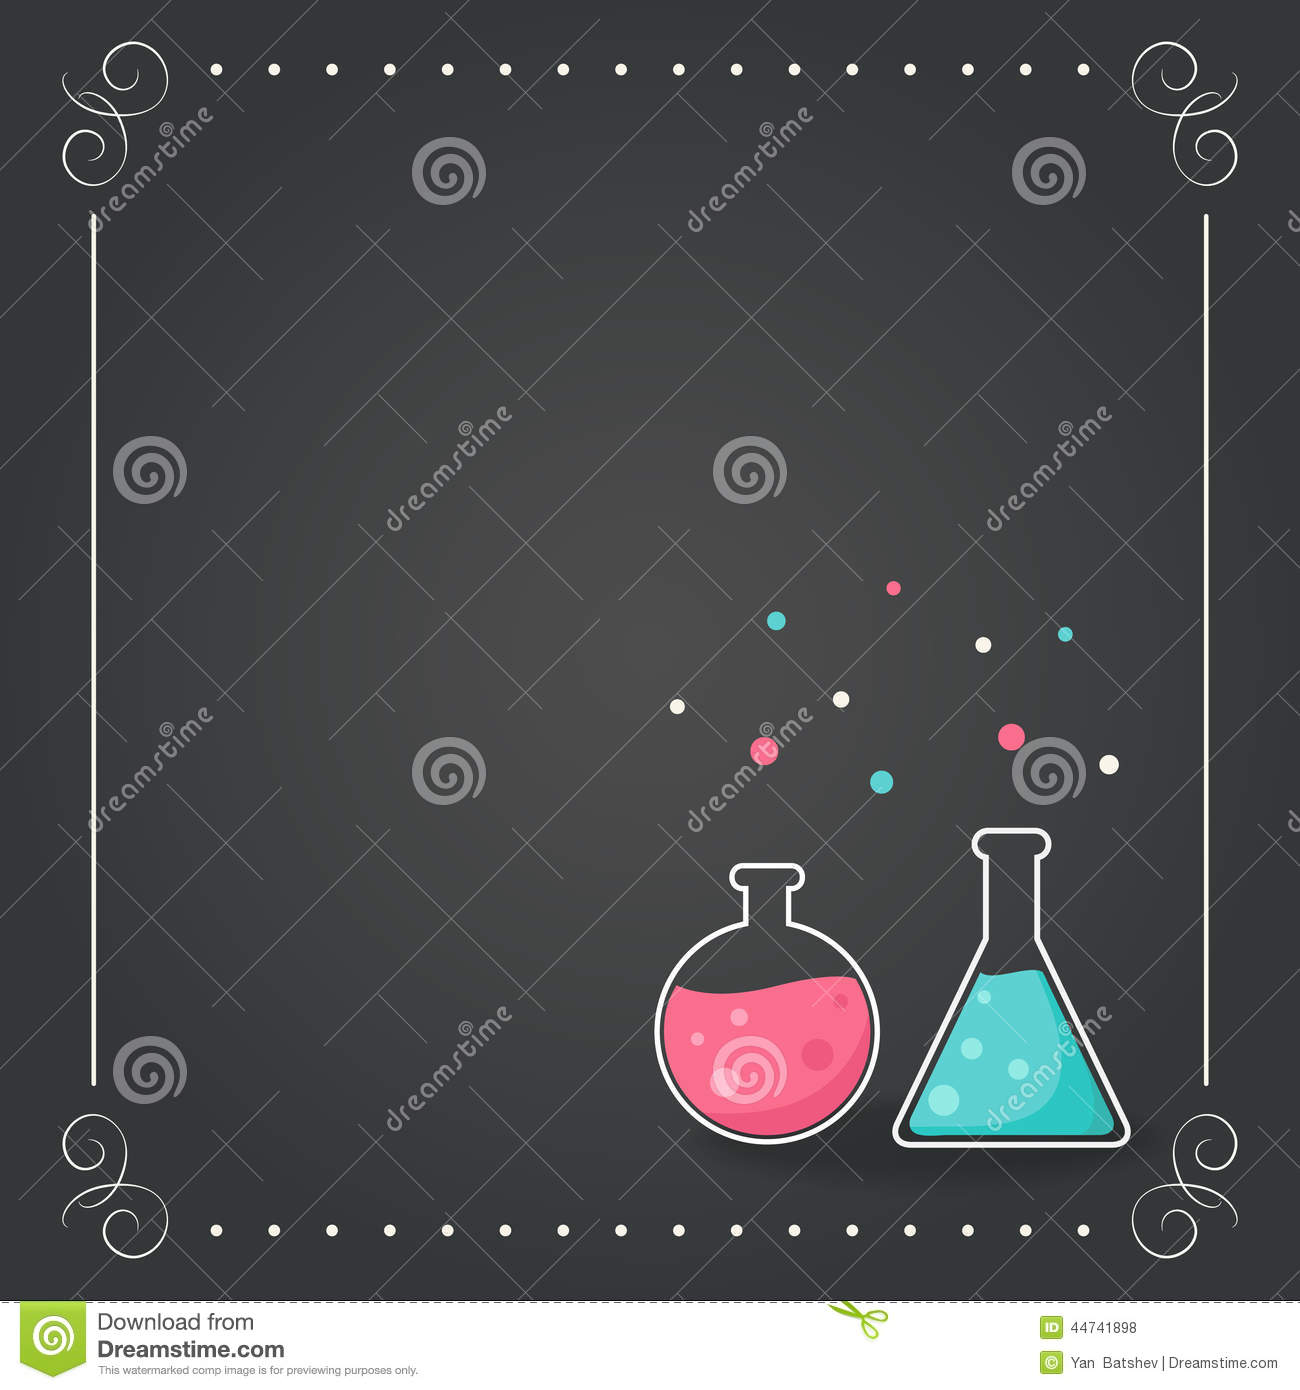 Chemistry Bottles on Chalkboard Background. School, Science, Chemistry Concept.